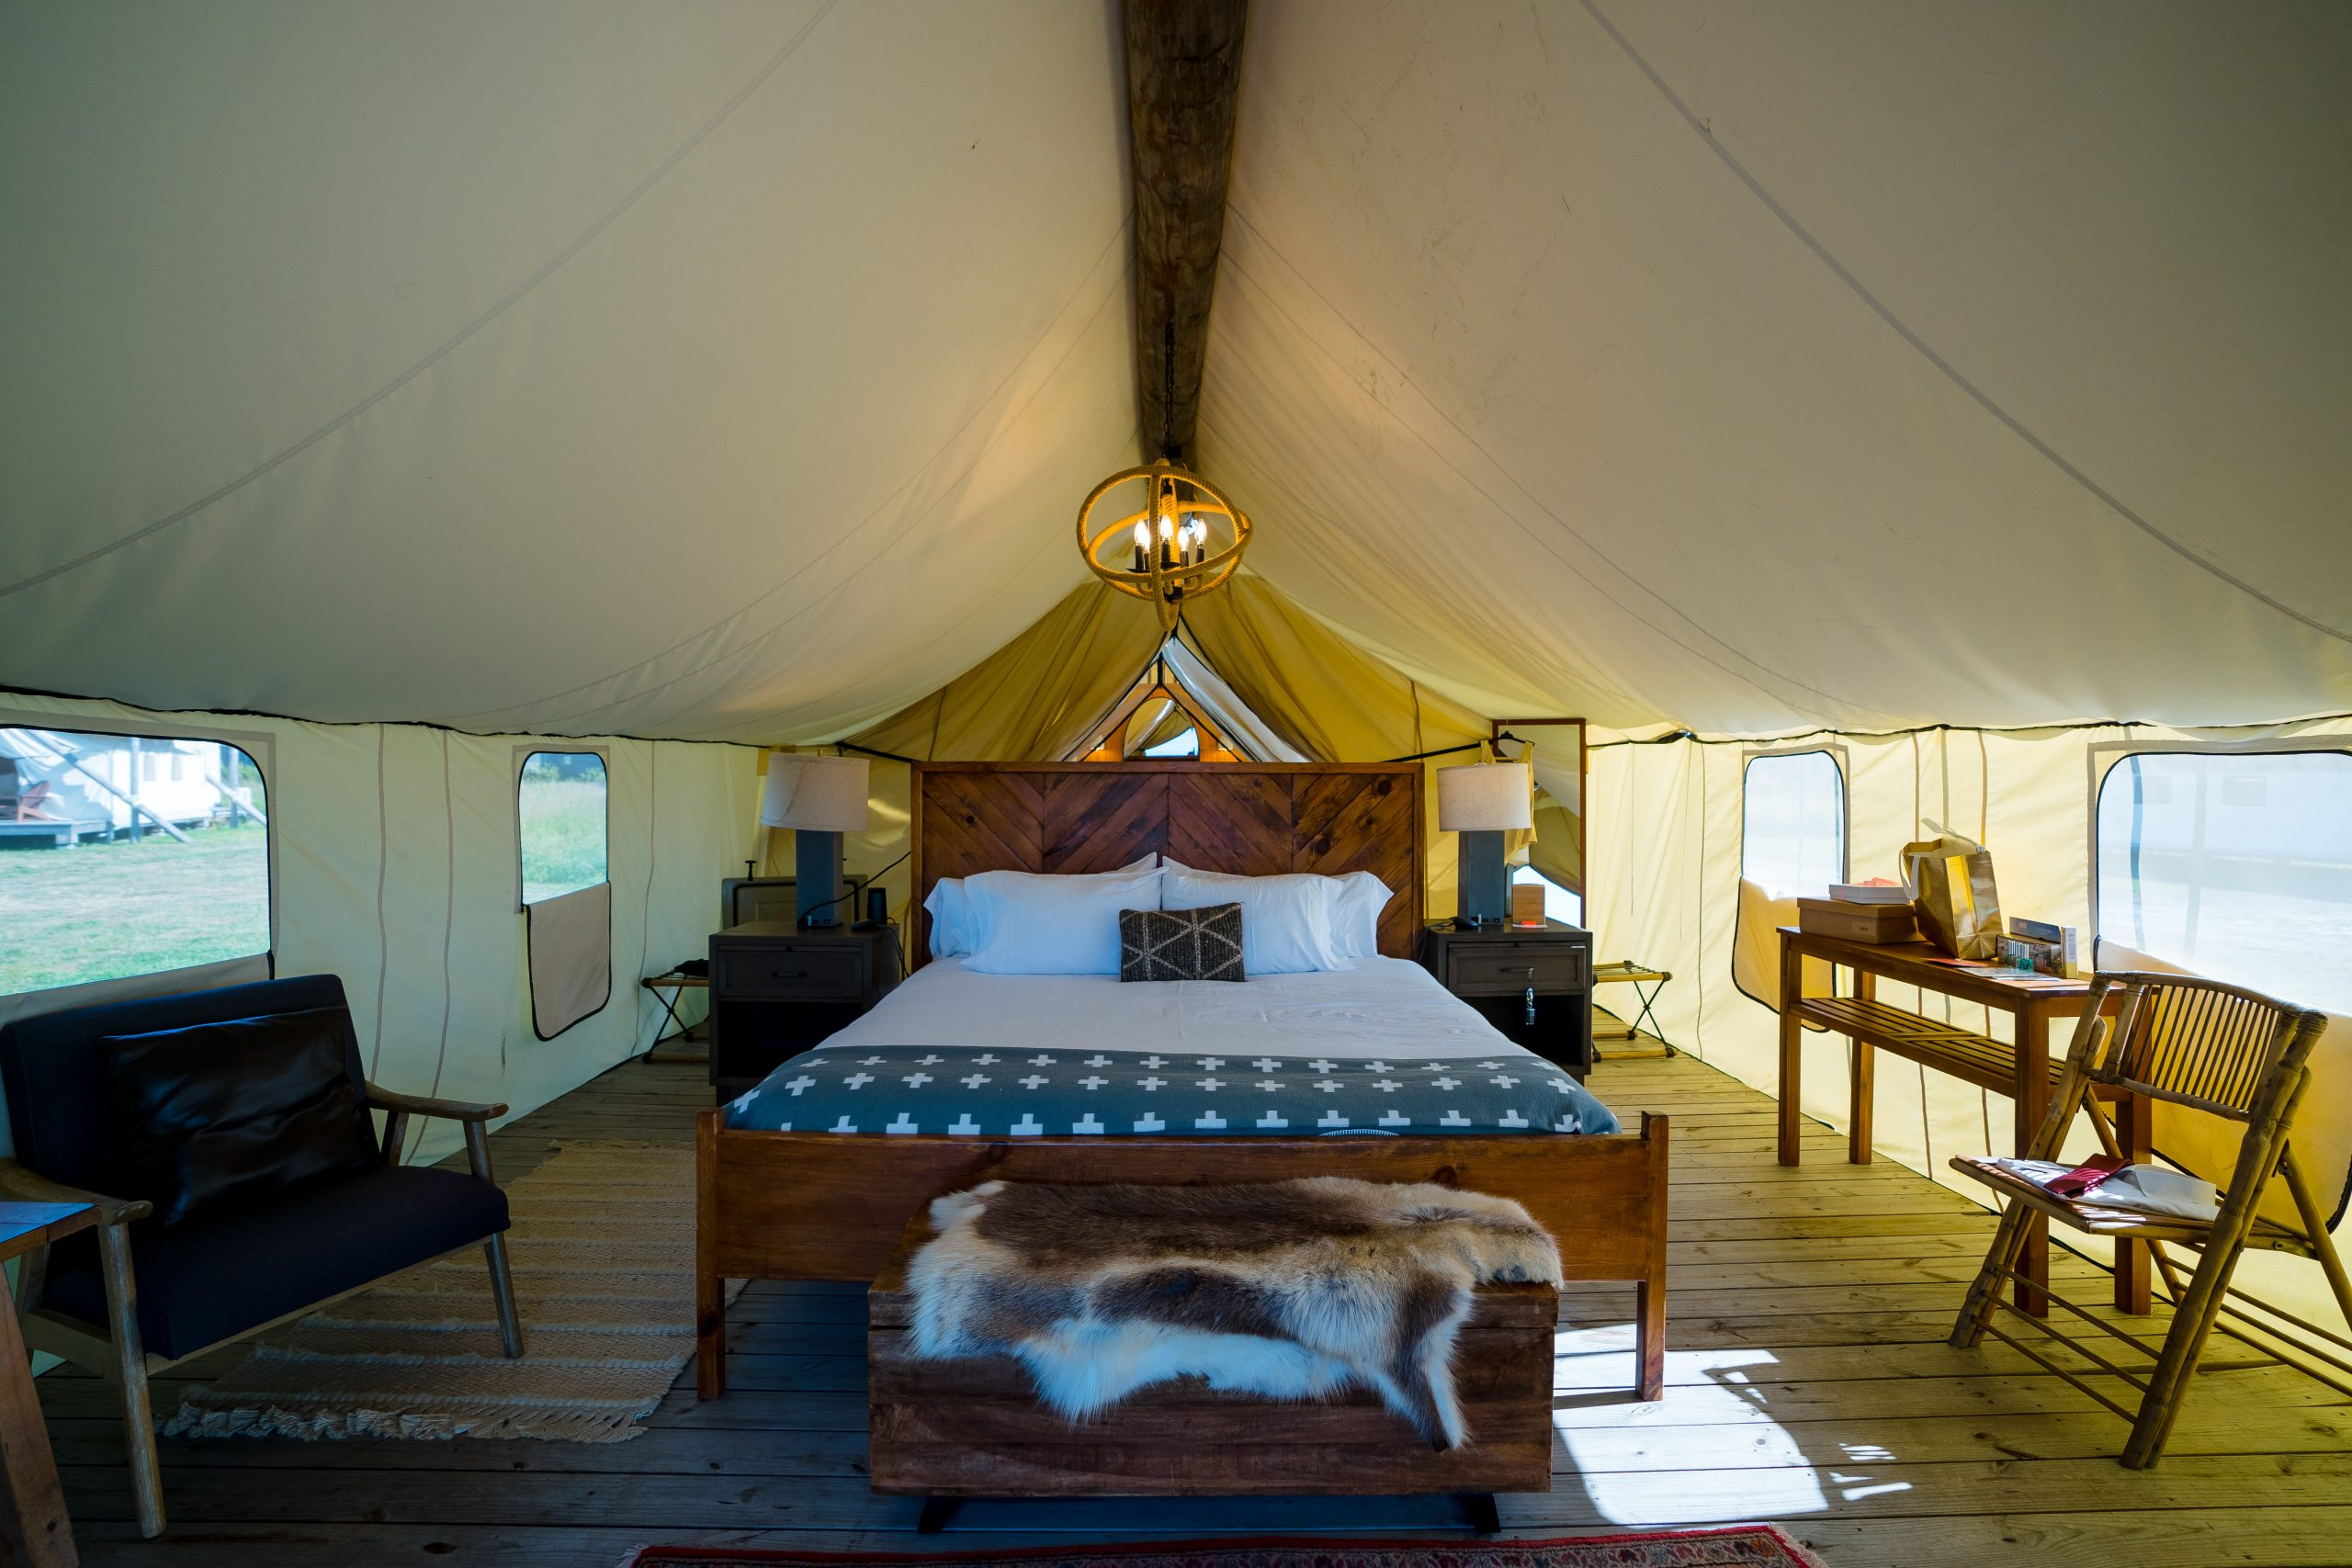 Influencer Event at Collective Retreats Glamping Resort at Governor's Island New York City